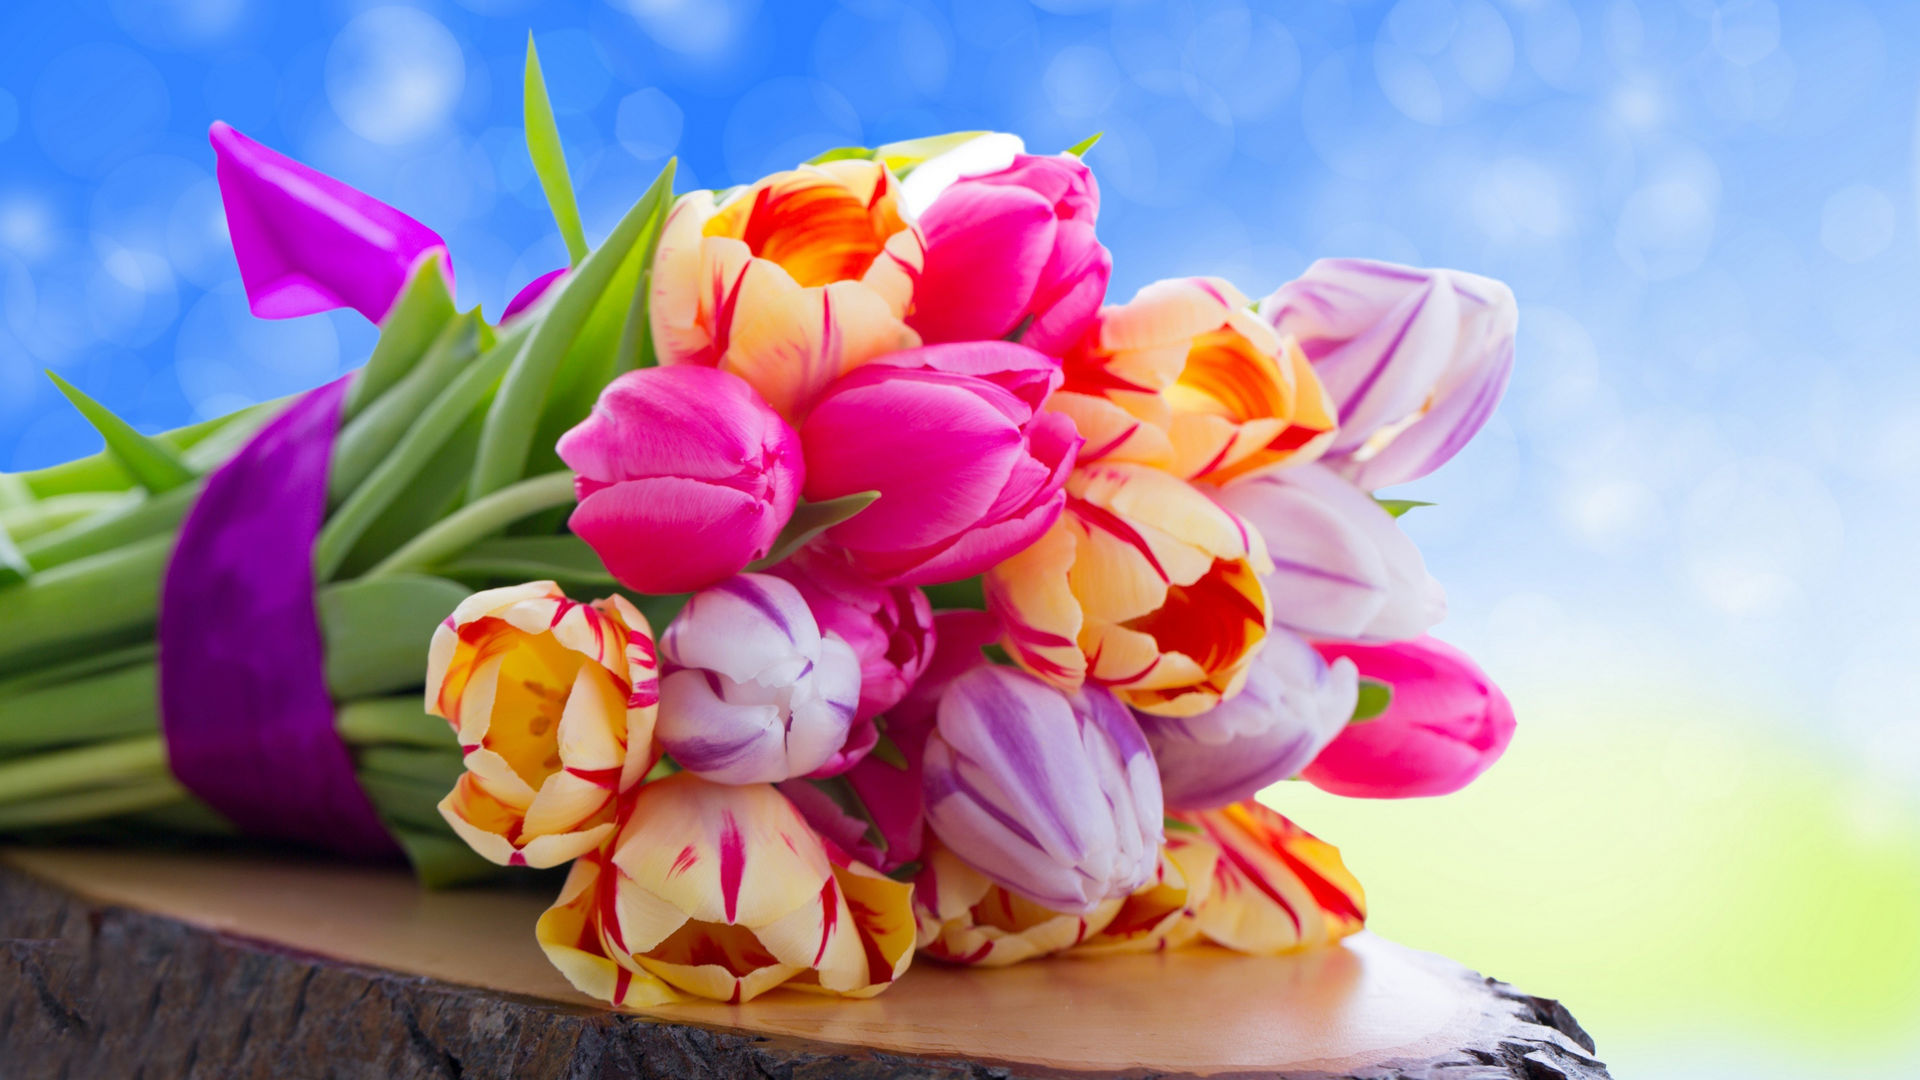 http://wallpapers-images.ru/1920x1080/flowers/wallpapers/wallpapers-flowers-3.jpg